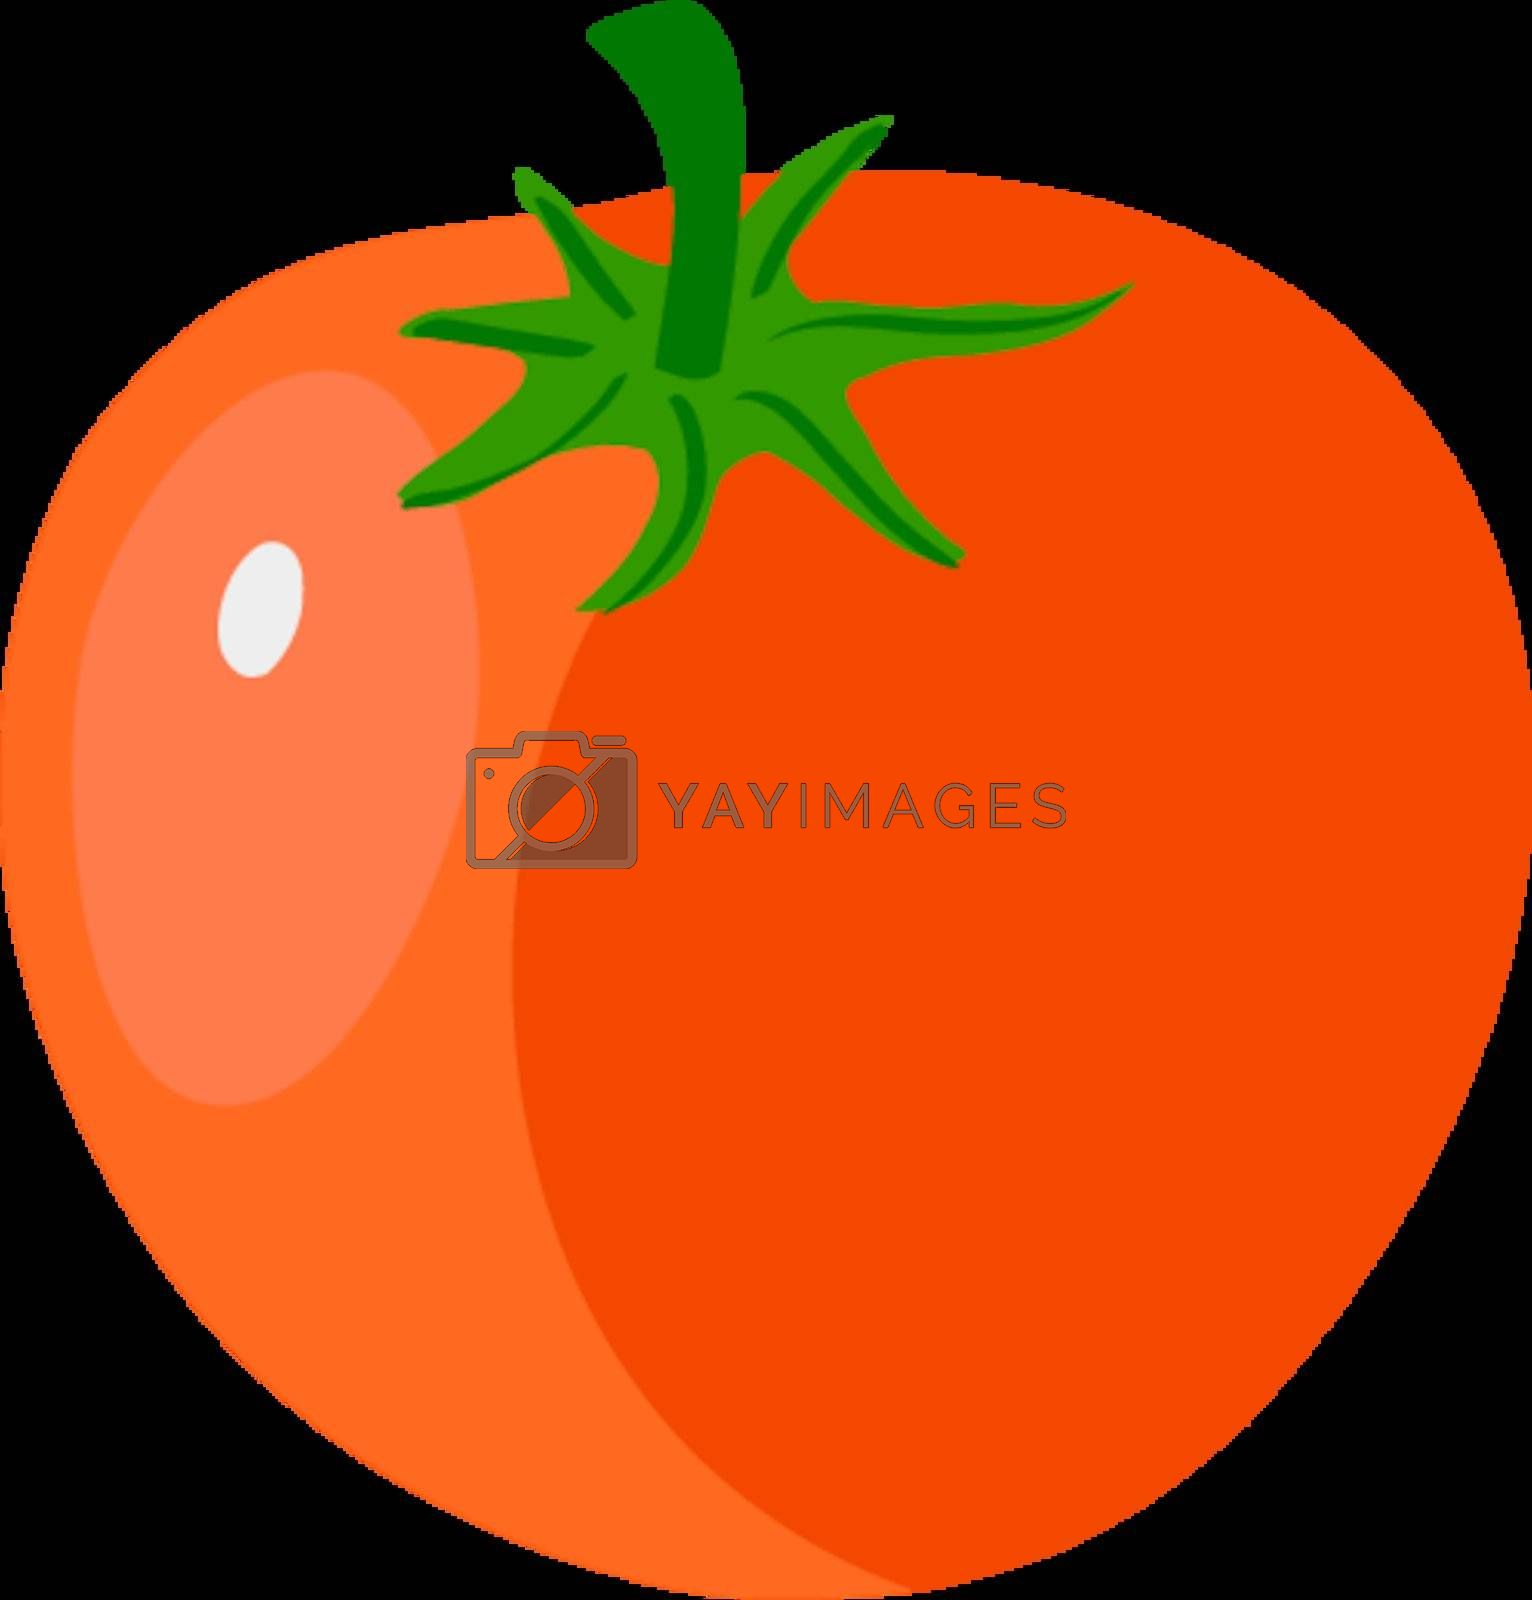 Royalty free image of tomato by Perysty